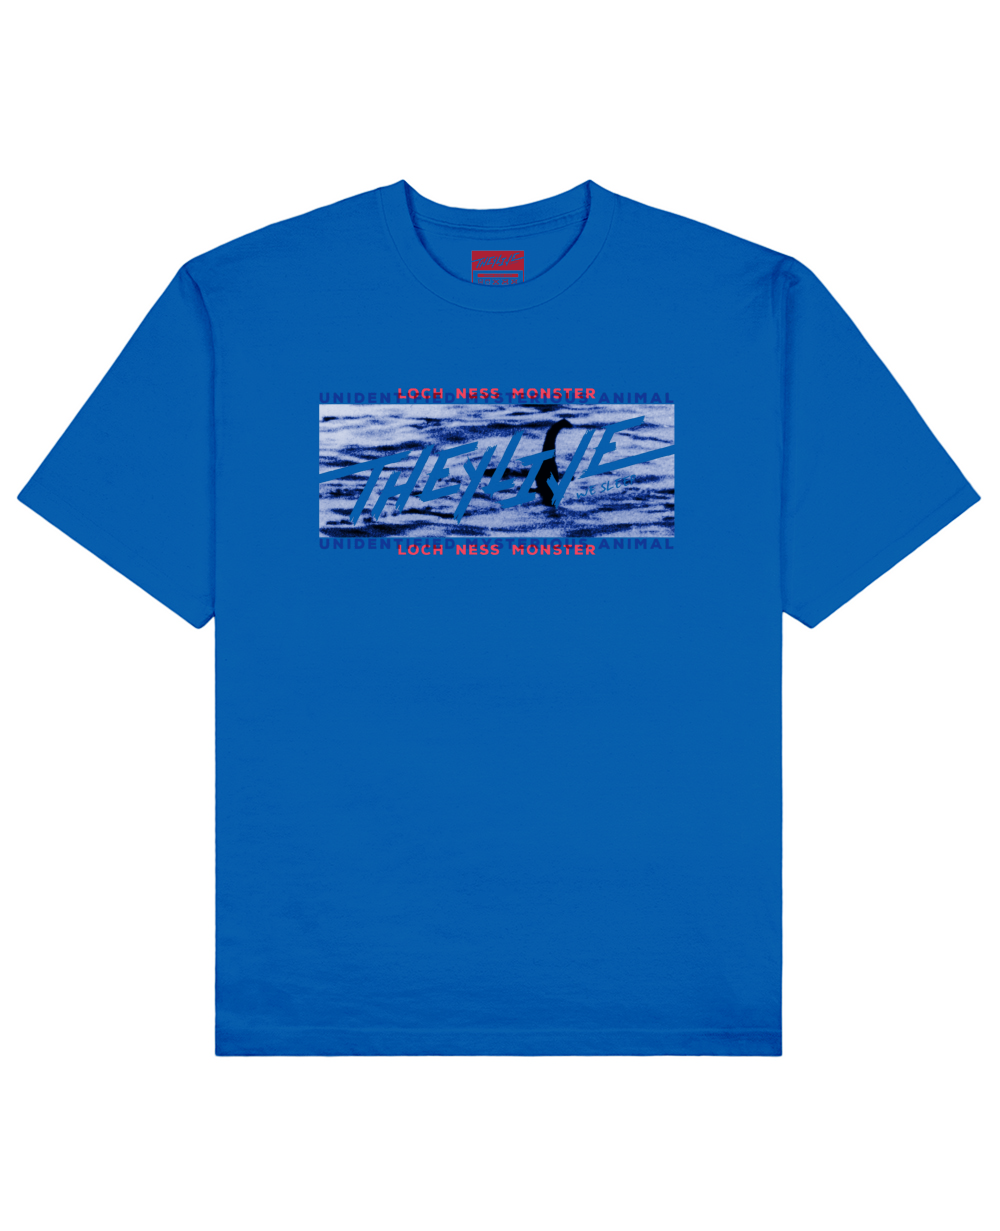 UMA Collection : Loch Ness Monster Print T-Shirt in Blue - T-Shirts - THEYLIVE - BRANMA